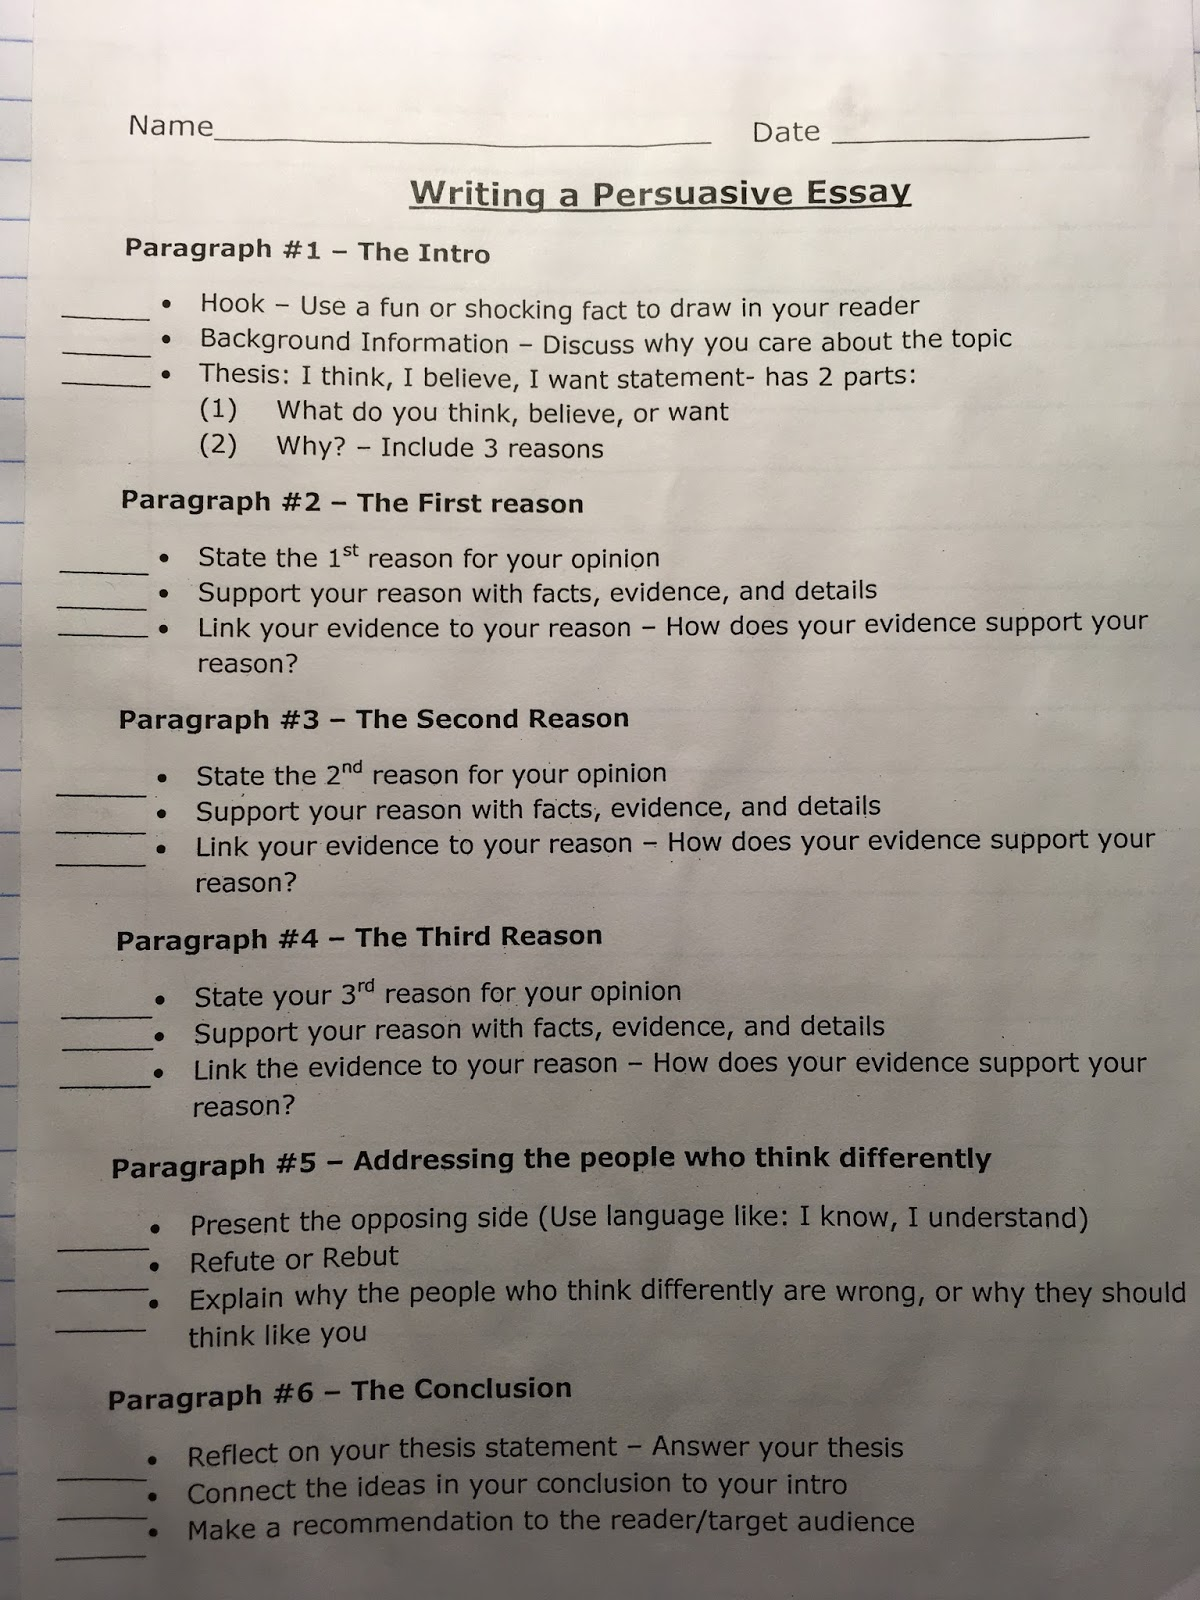 persuasive essay about relationships Persuade me, please reading a persuasive essay and liking it  word relationships drawing conclusions 615  introduce the genre of persuasive essays by reading.